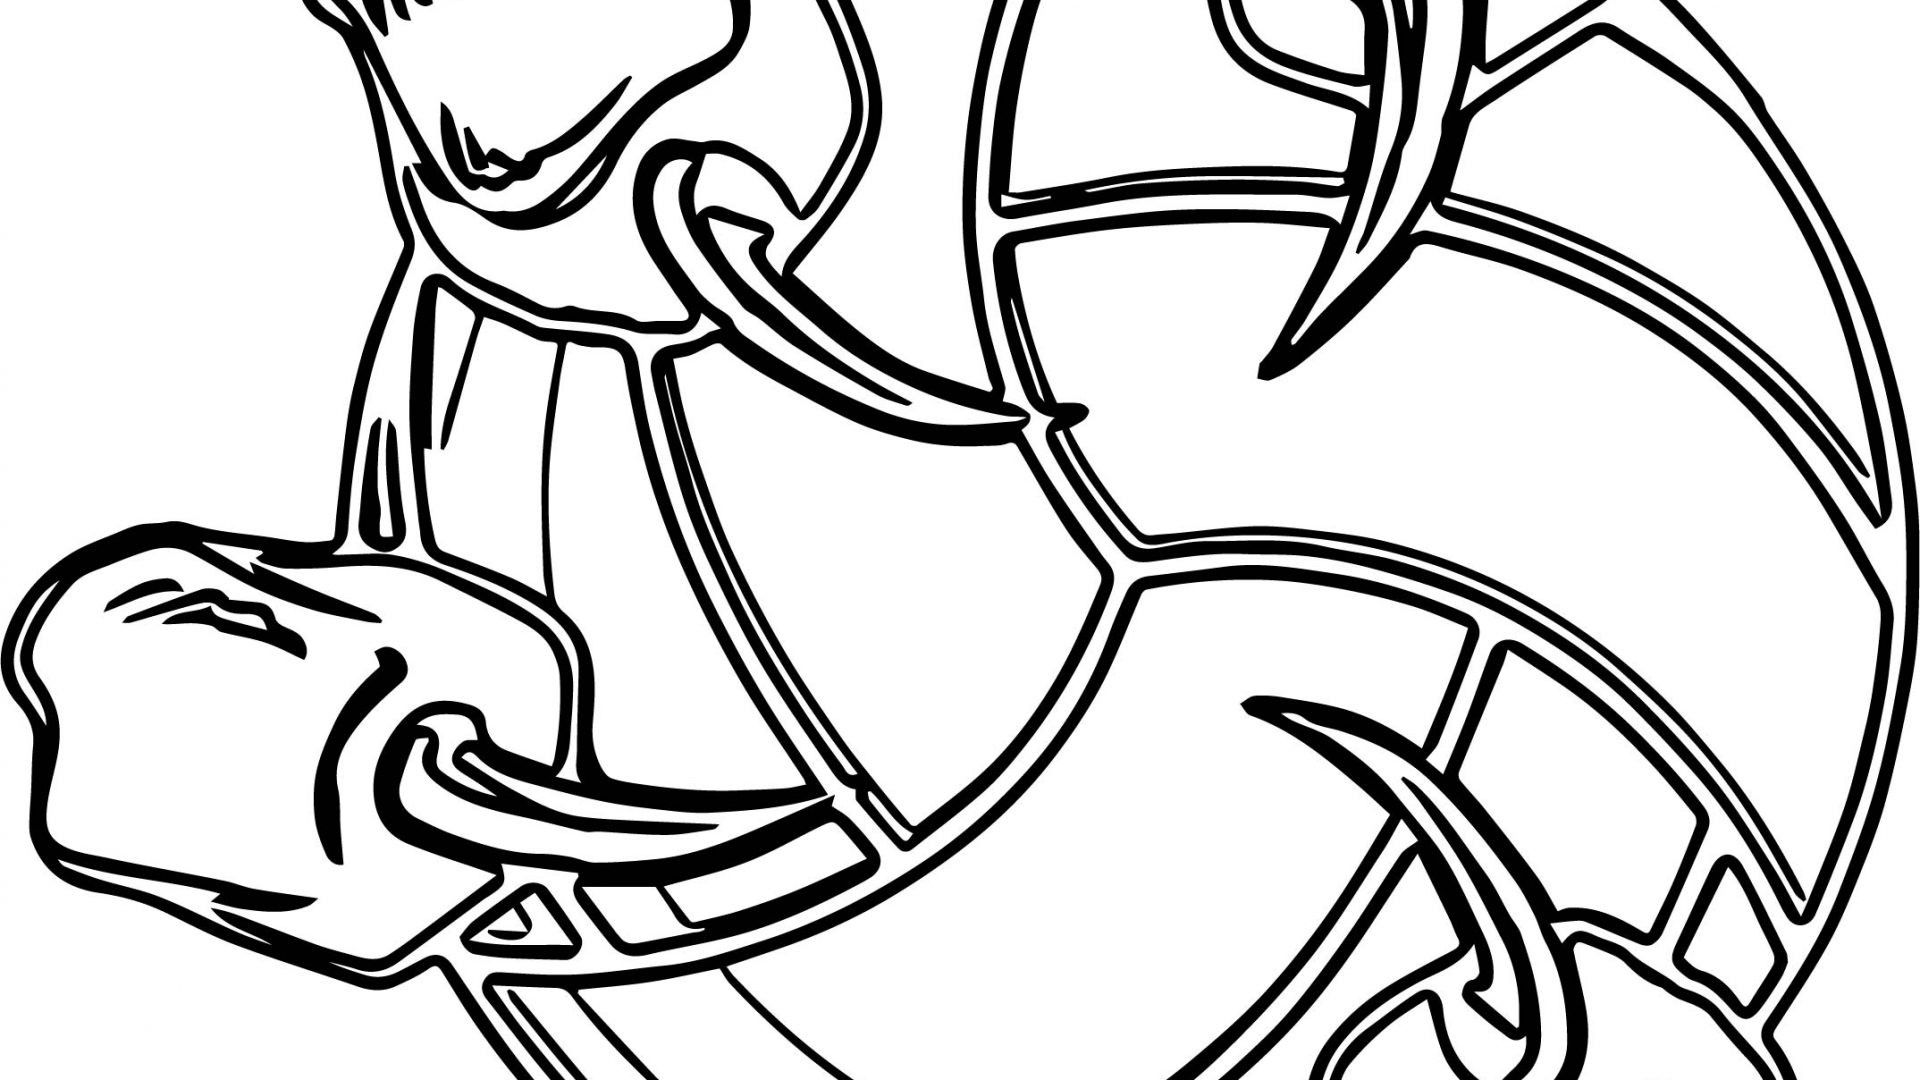 1920x1080 Fundamentals Volleyball Coloring Pages Free Sports To Print Fresh